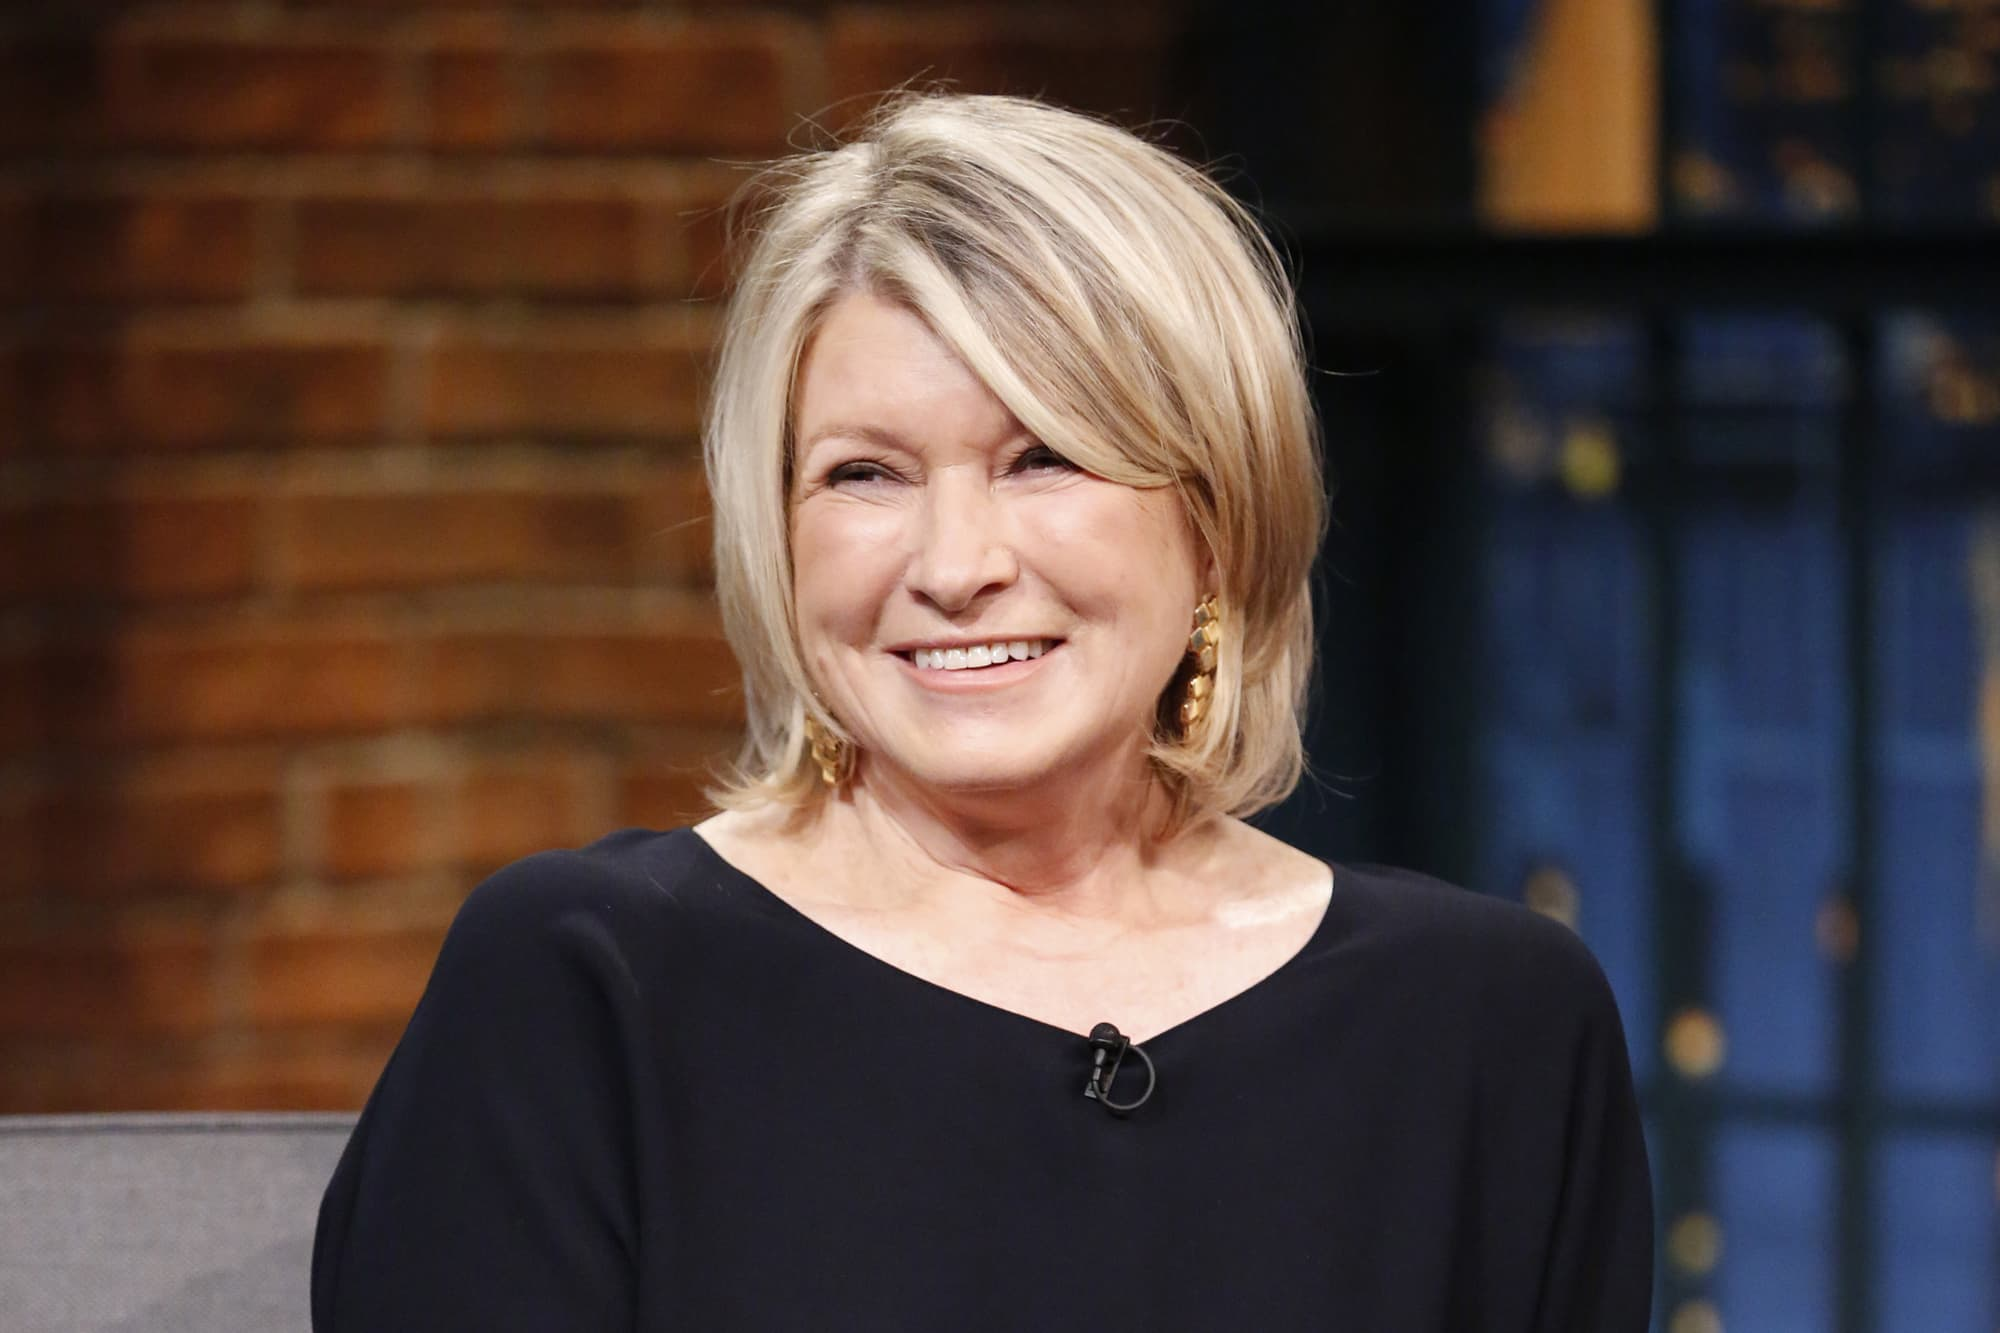 Martha Stewart tells Jay Leno she's faced a lot of doubt as an entrepreneur: Even my lawyer didn't believe in me